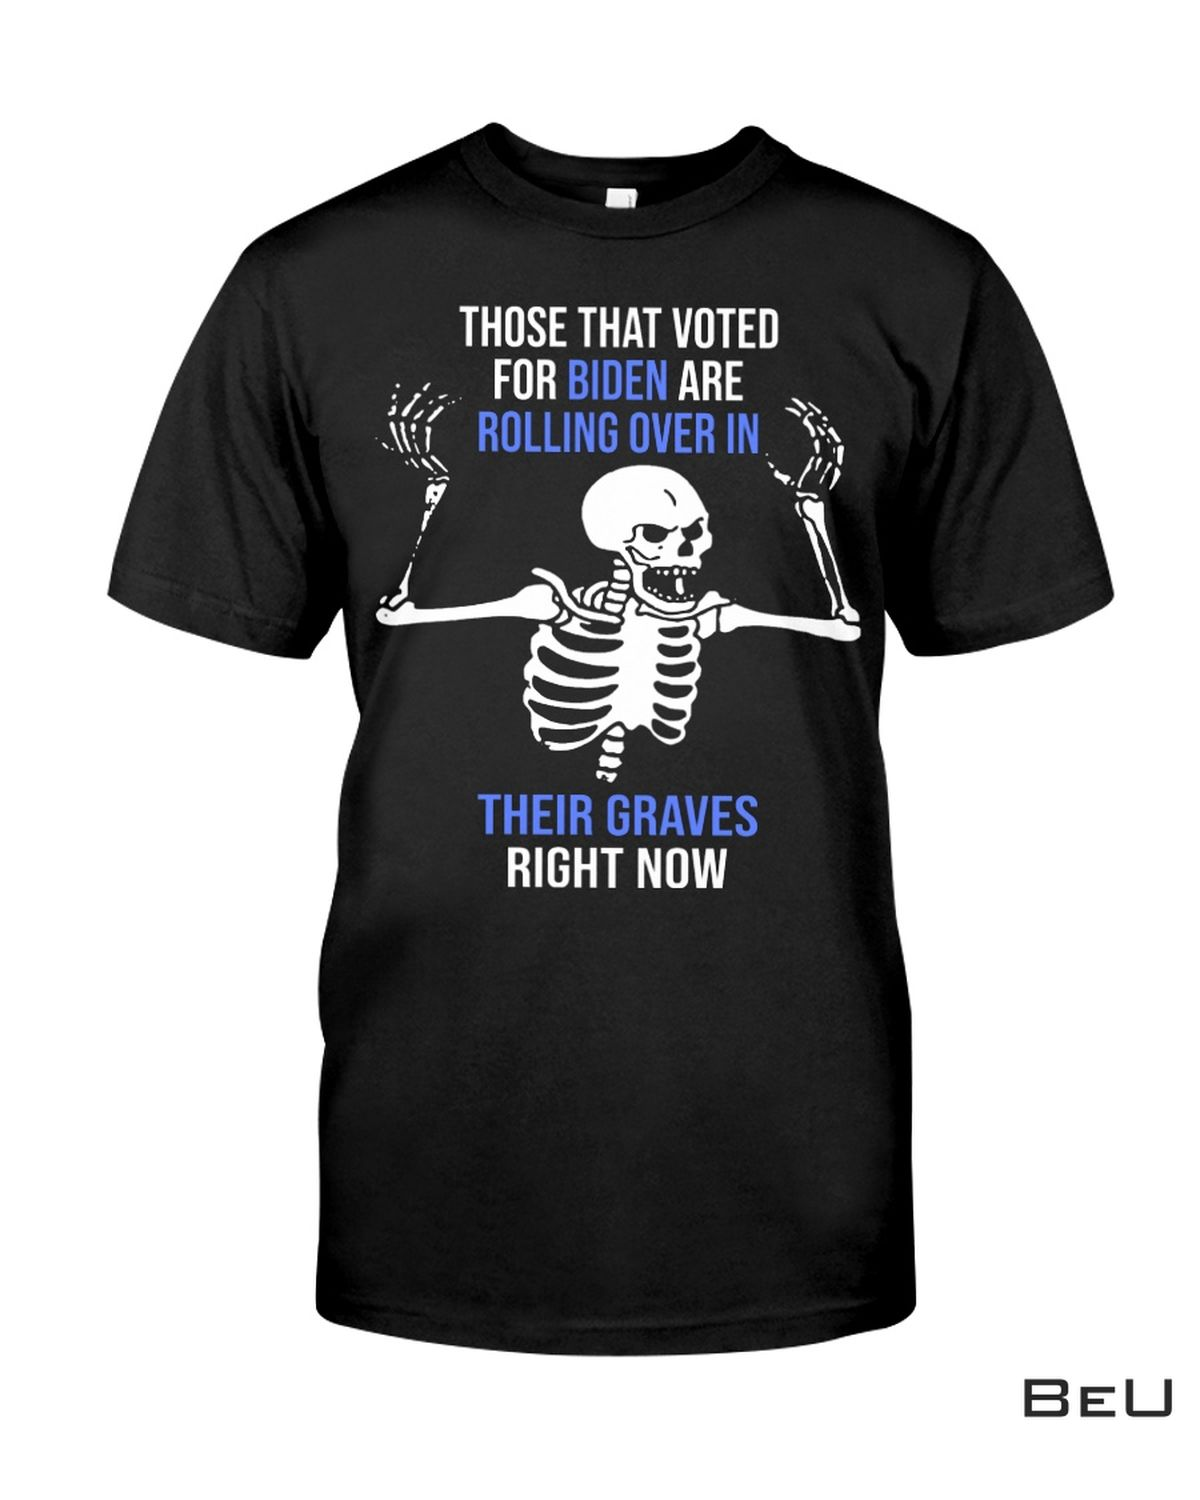 Those That Voted For Biden Are Rolling Over In Their Graves Shirt